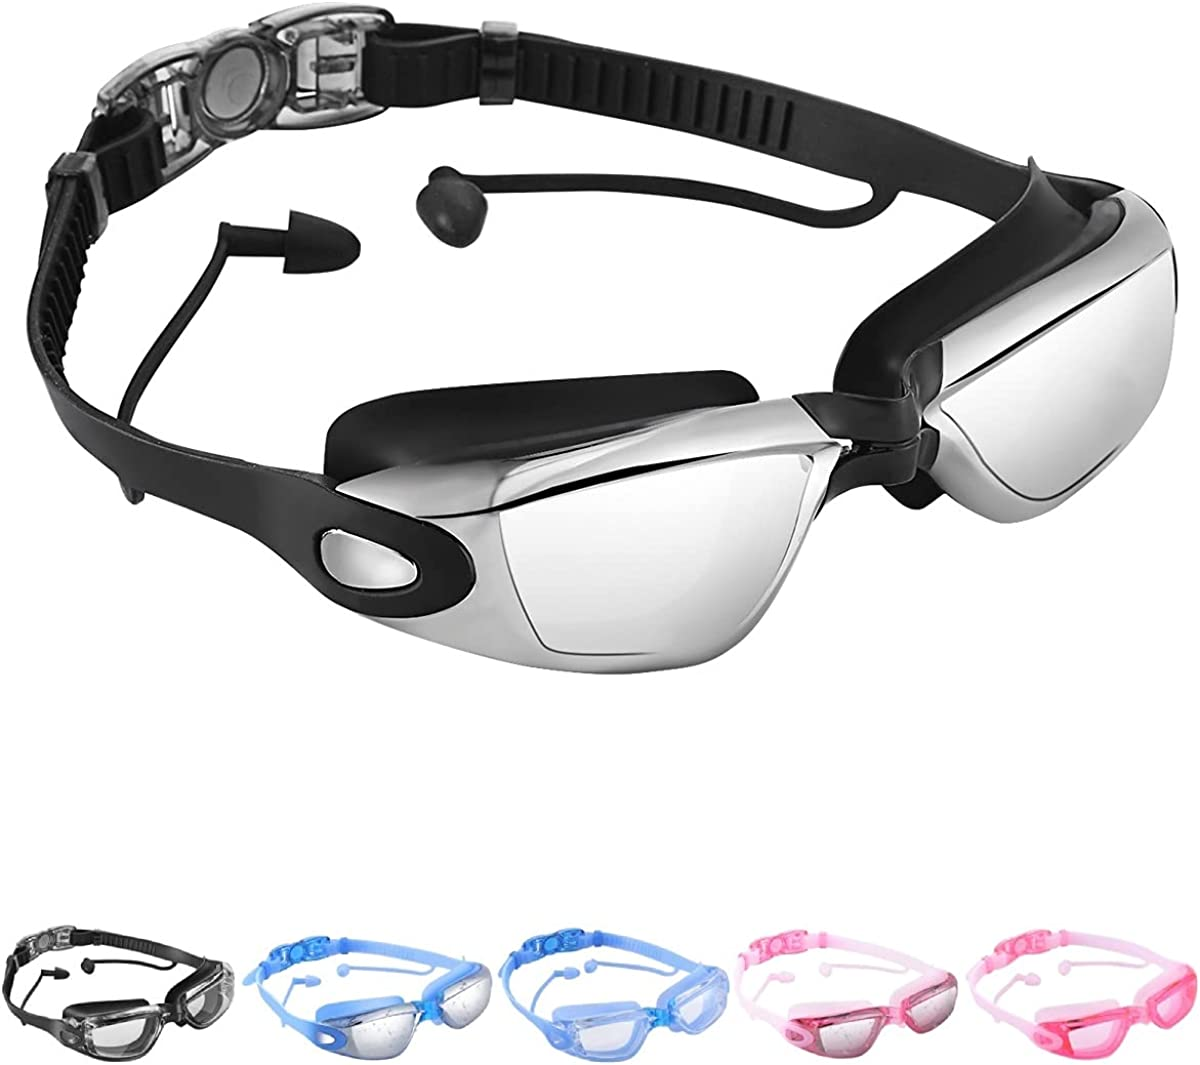 OPKALL Swimming Goggles Connected to Earplugs Swimming Goggles Anti Fog Triathlon with Crystal Clear UV Protection Case for Adult Men Women Youth Teen : Clothing